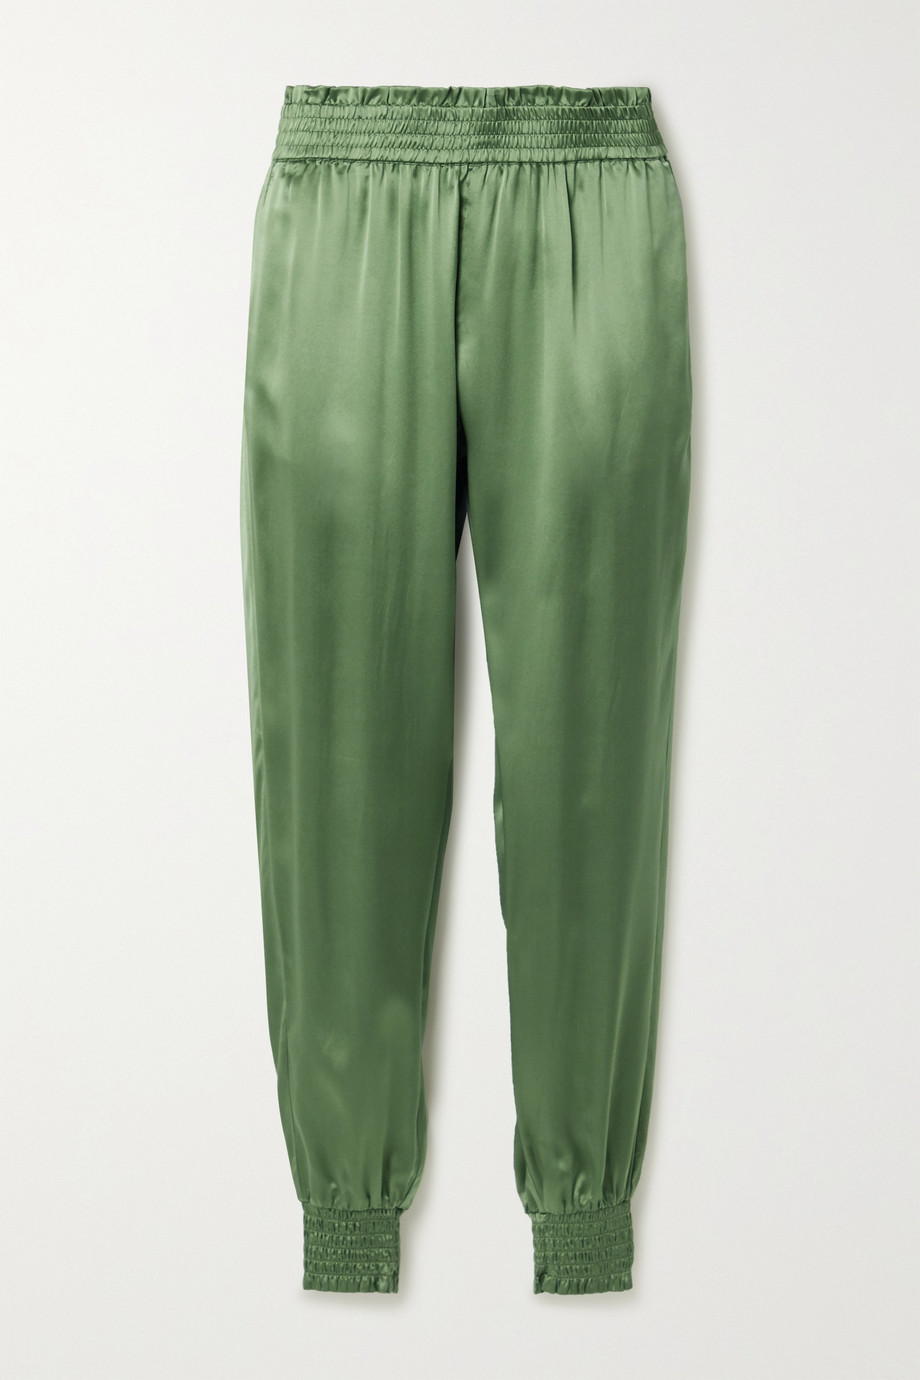 Cami NYC The Selbie silk-charmeuse tapered track pants